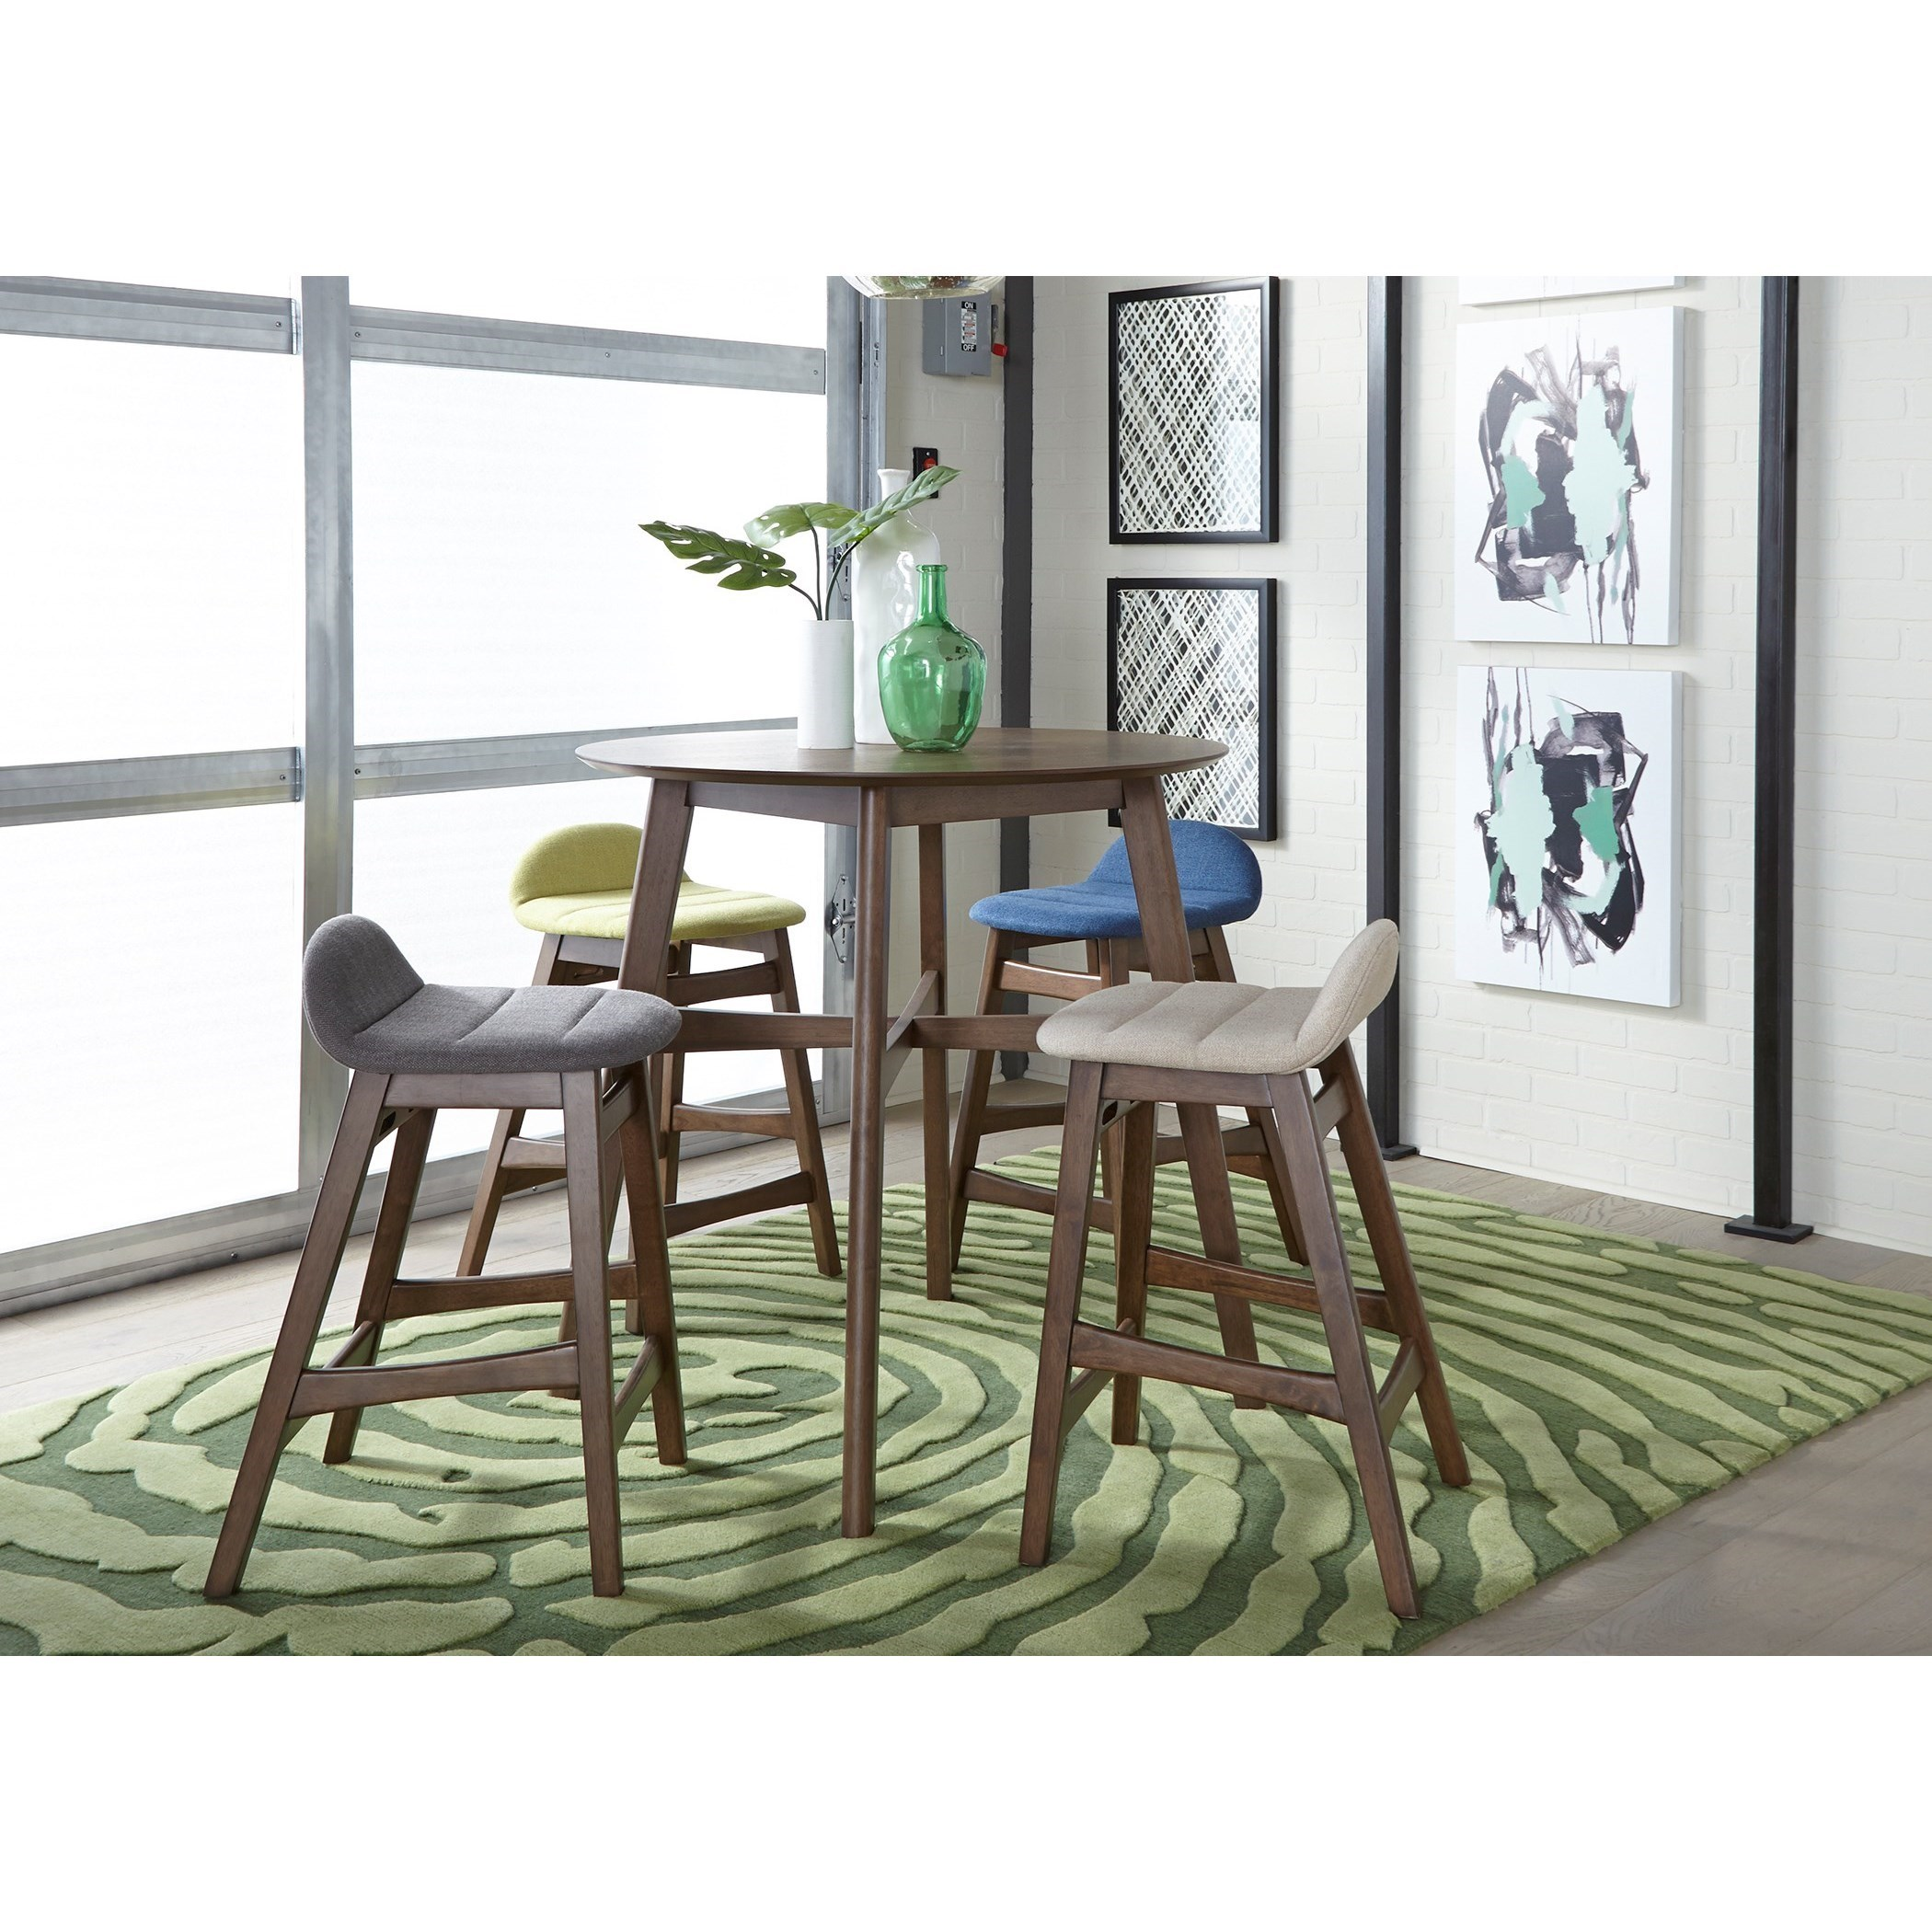 Liberty Furniture Space Savers Mid-Century Modern 5-Piece Gathering Table Set with Upholstered & Liberty Furniture Space Savers Mid-Century Modern 5-Piece Gathering ...